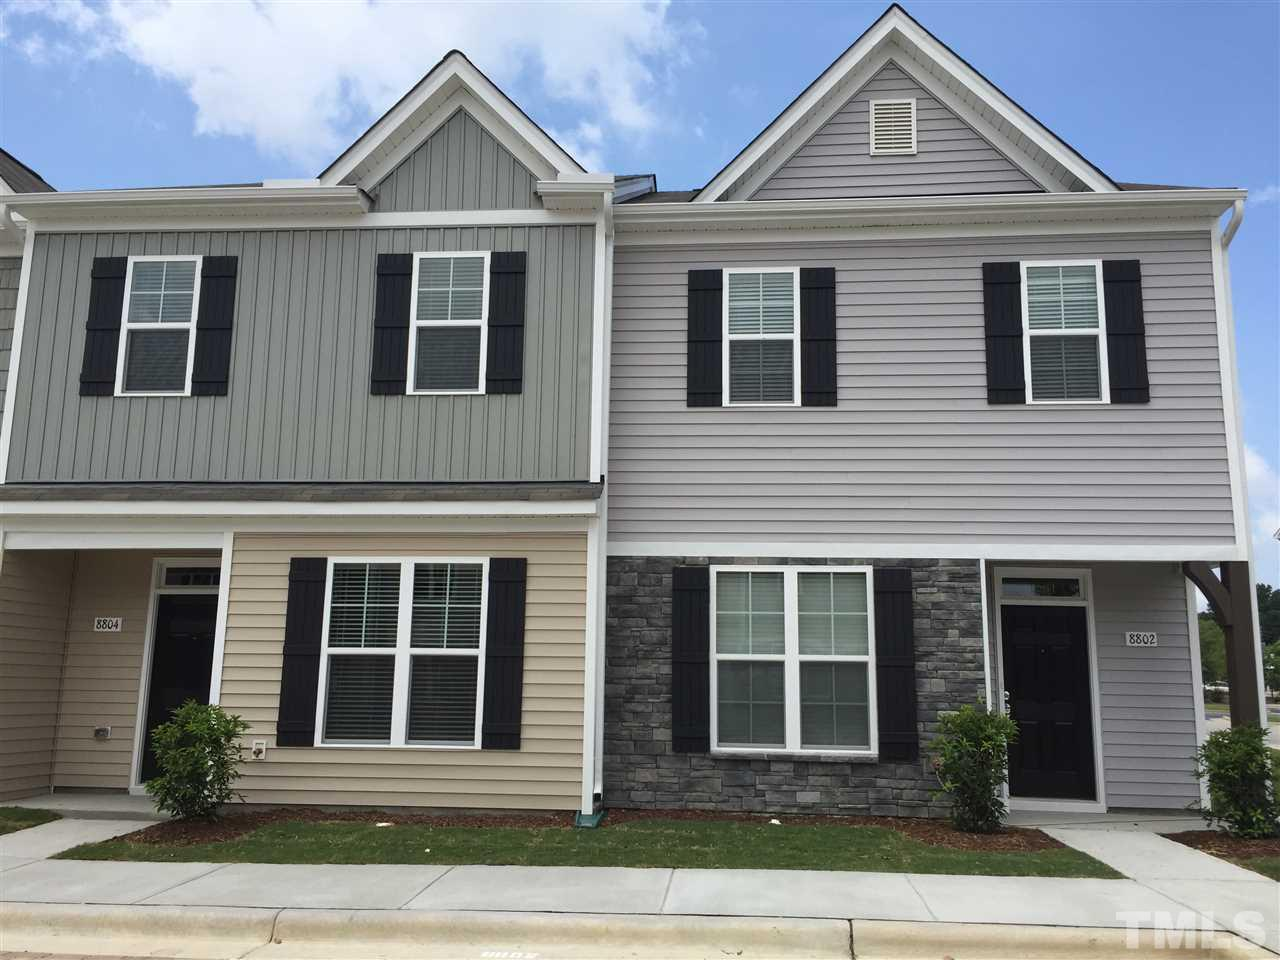 8802 Commons Townes Drive 75, Raleigh, NC 27616